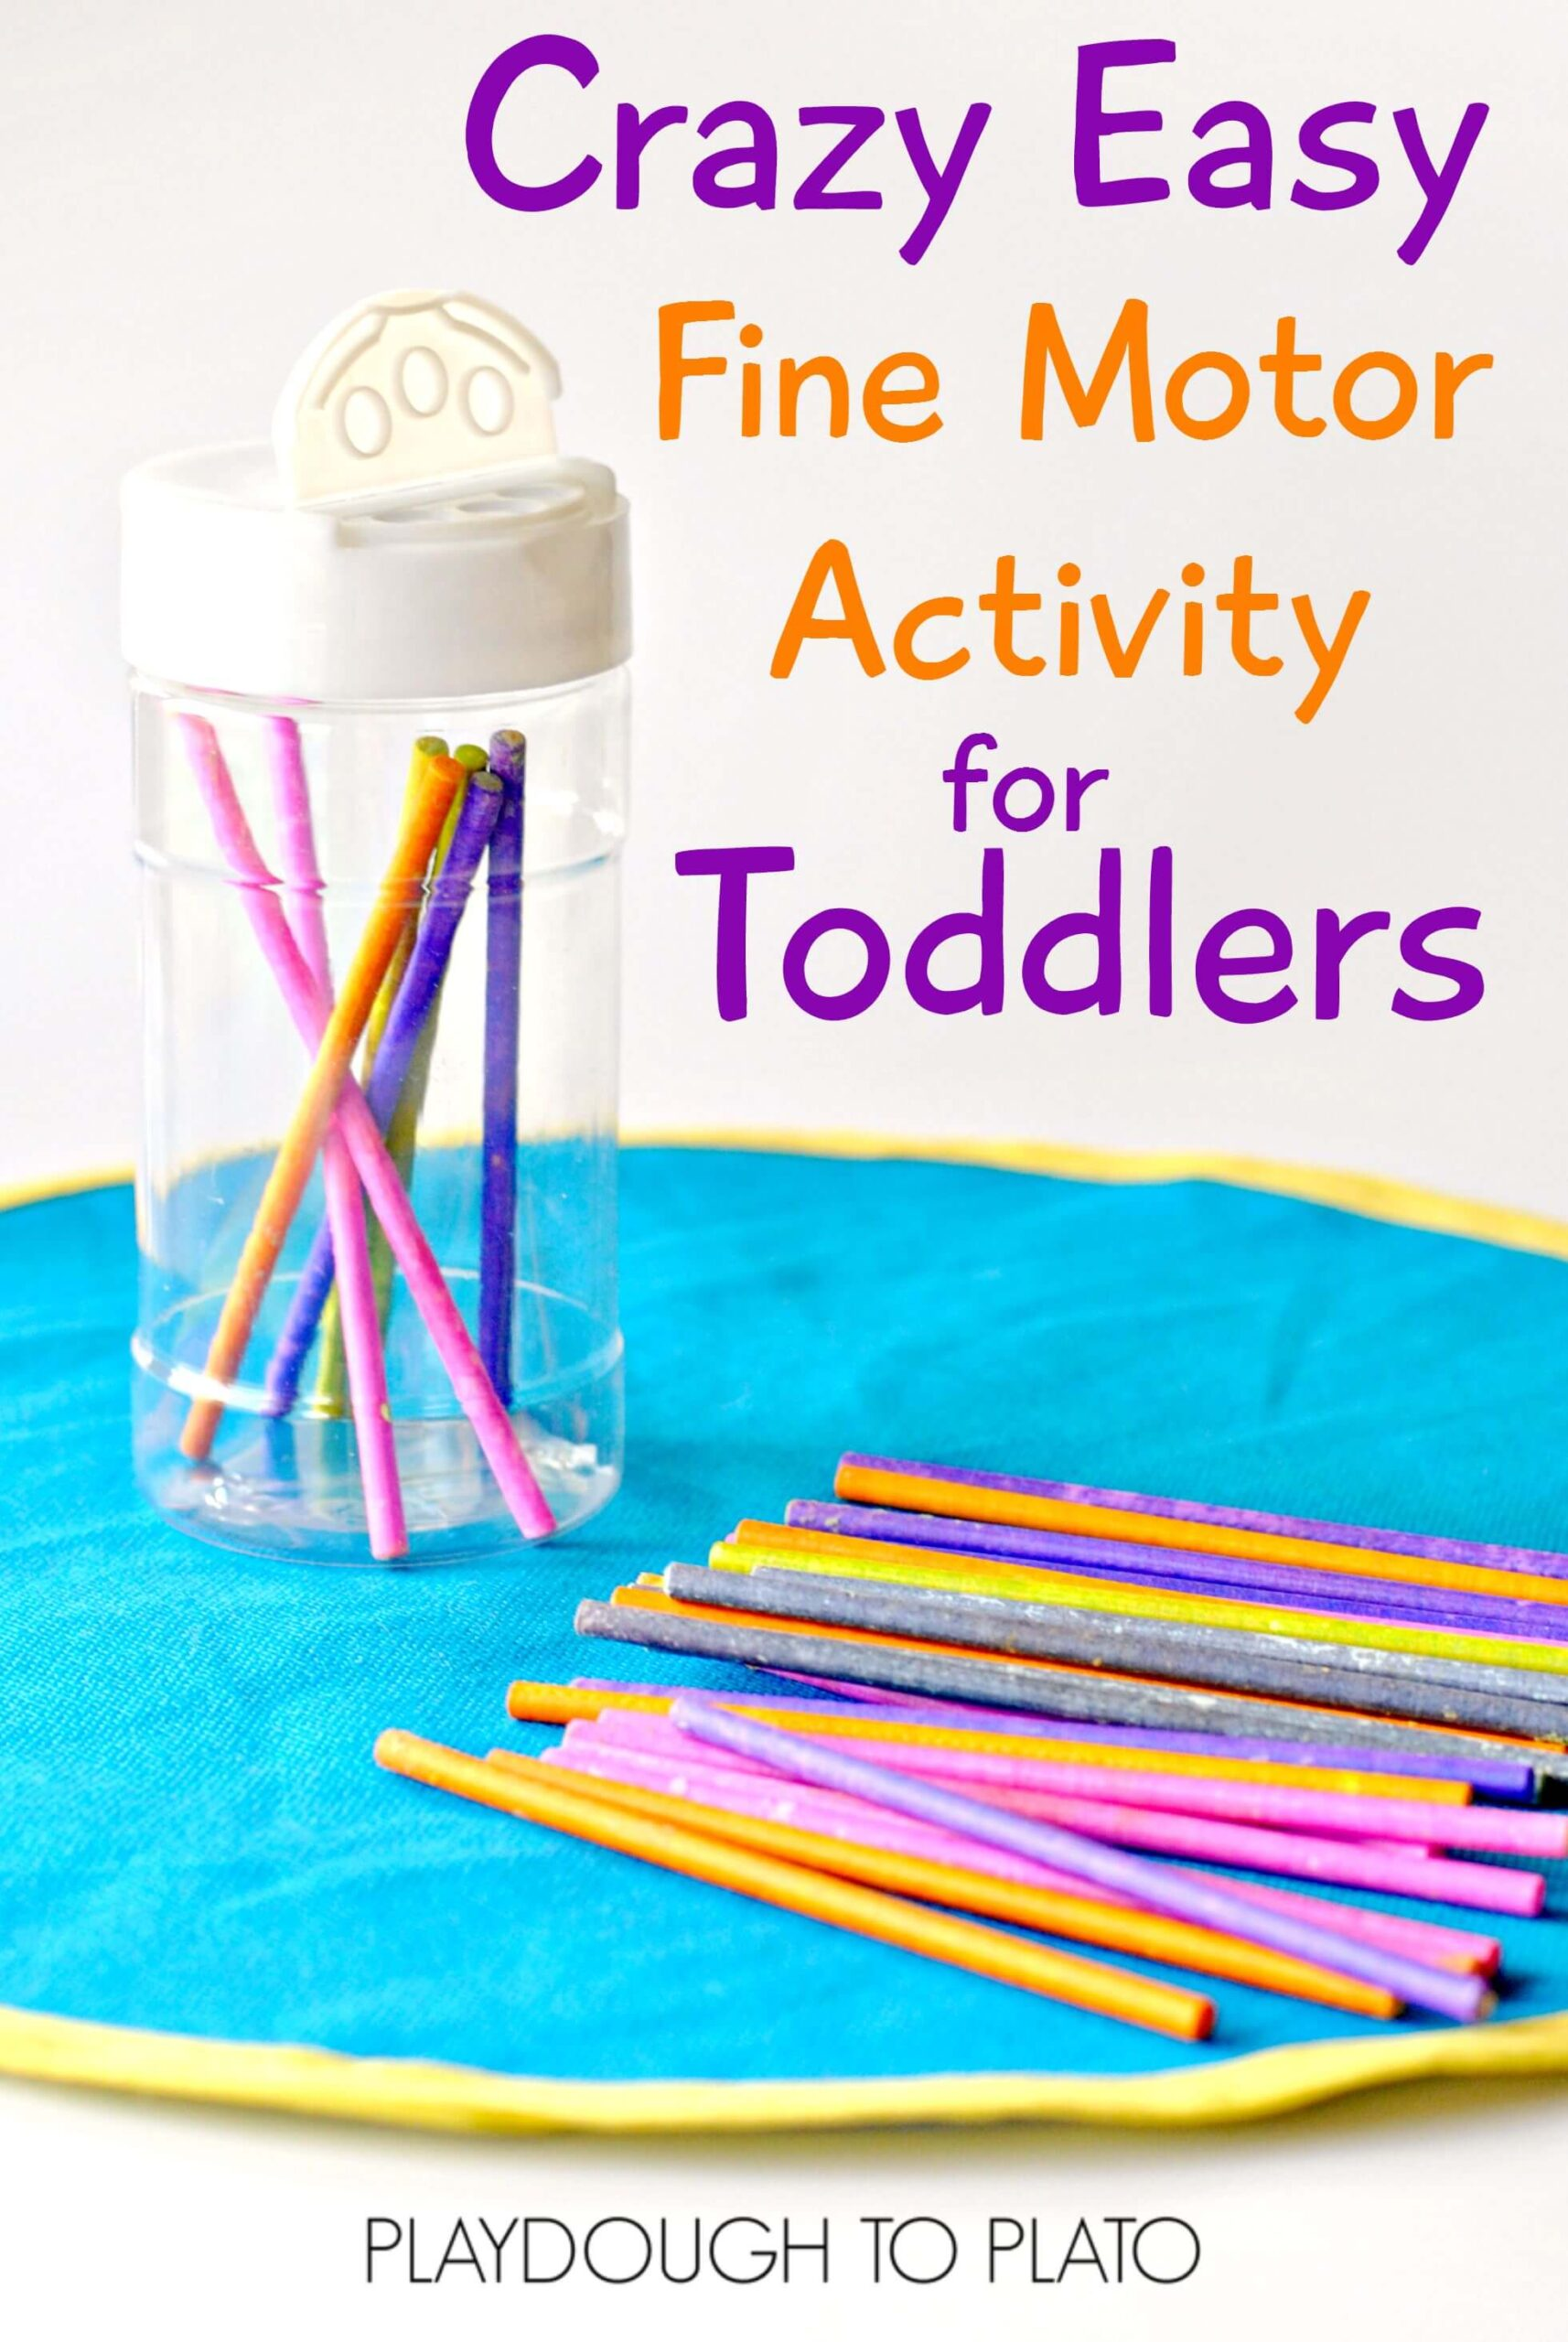 Easy Fine Motor Activity for Toddlers